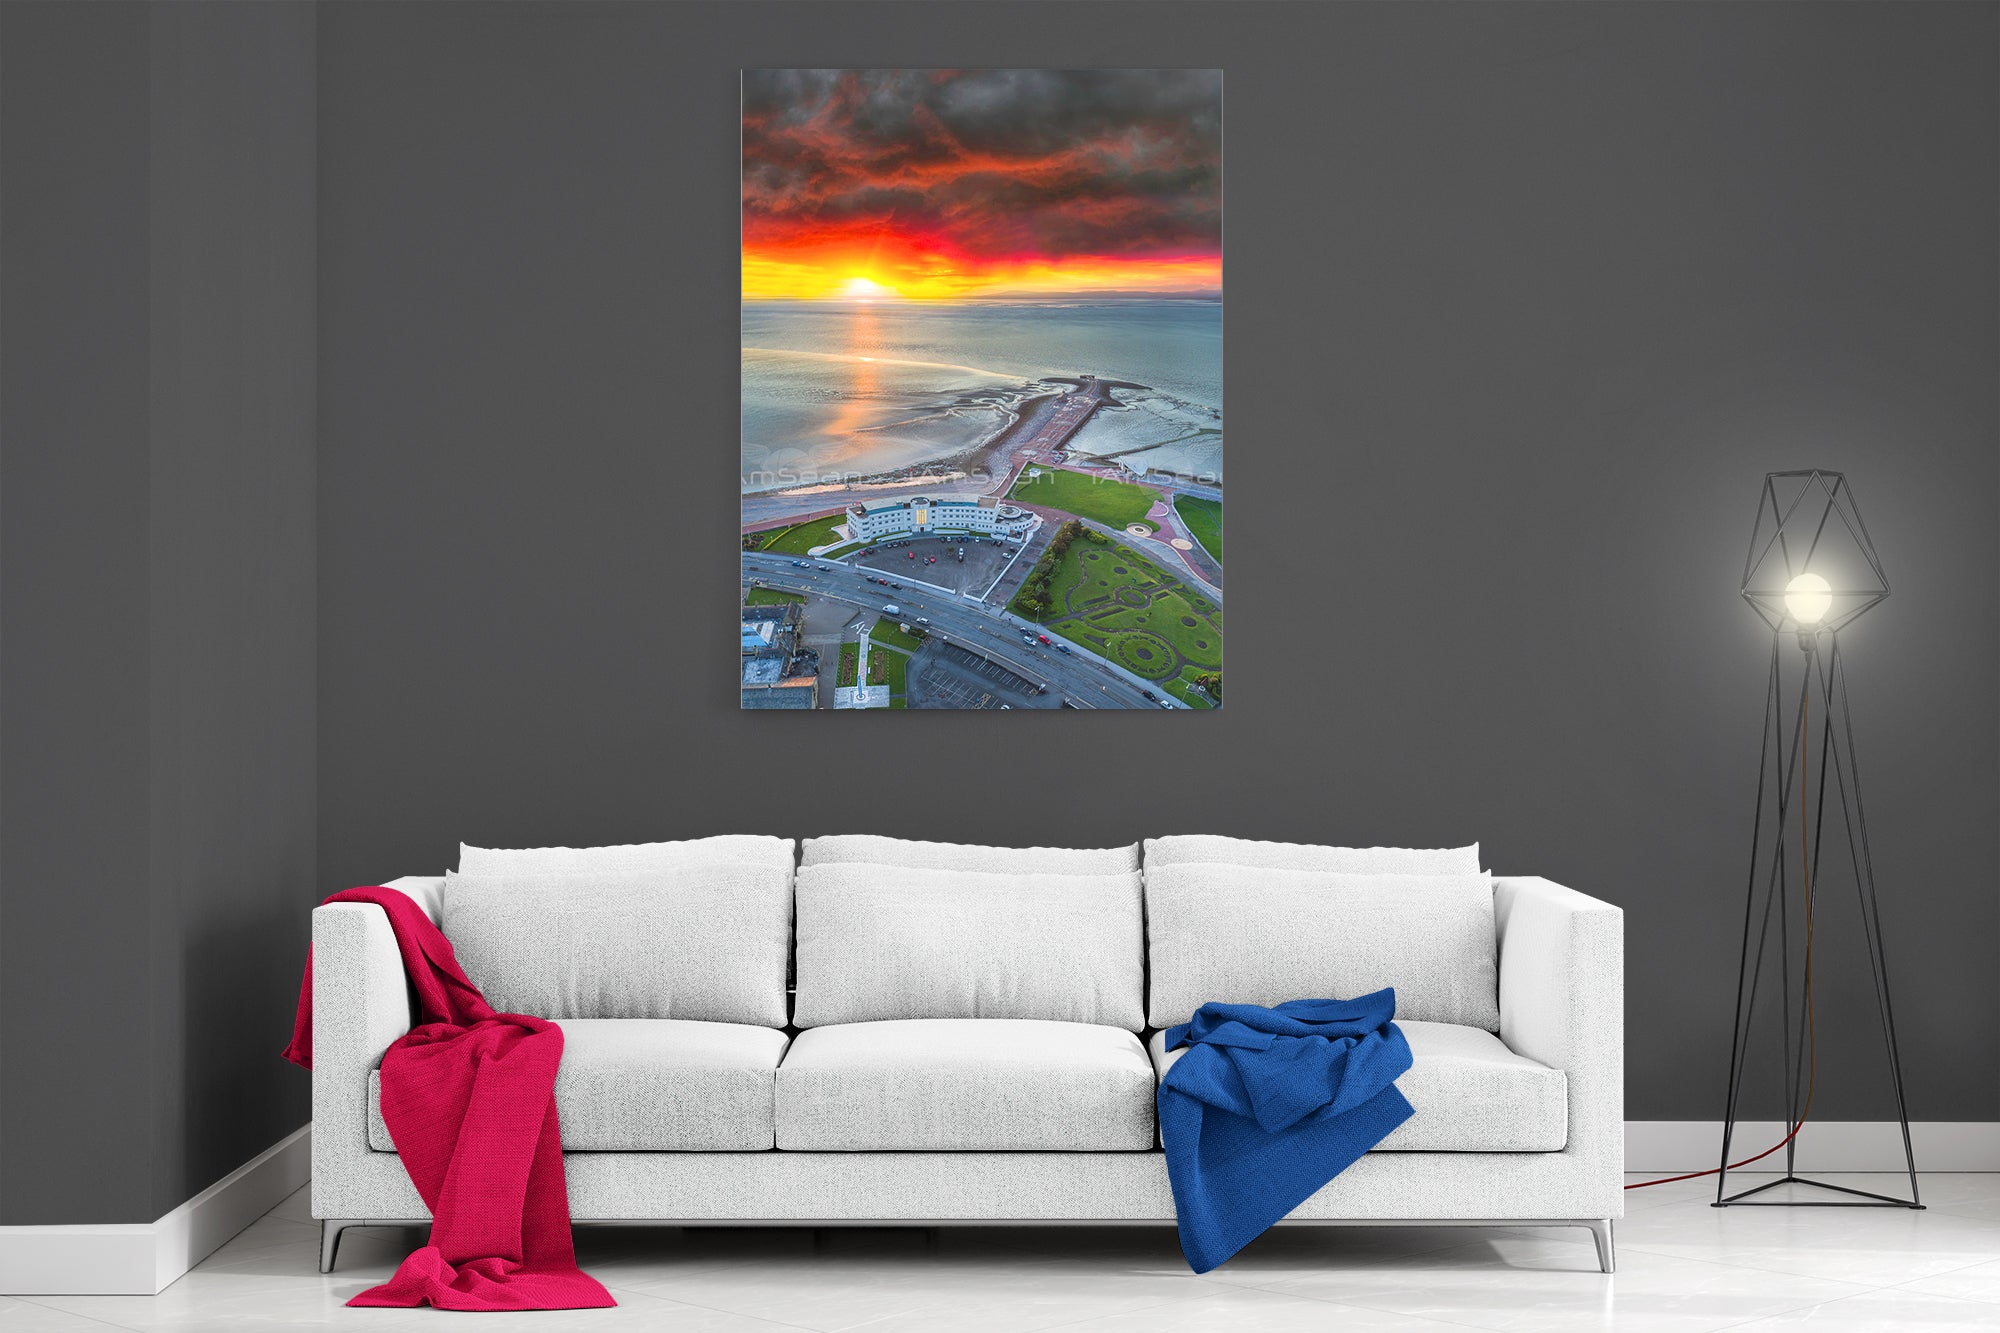 The Midland Hotel Sunset - Ready To Hang Canvas